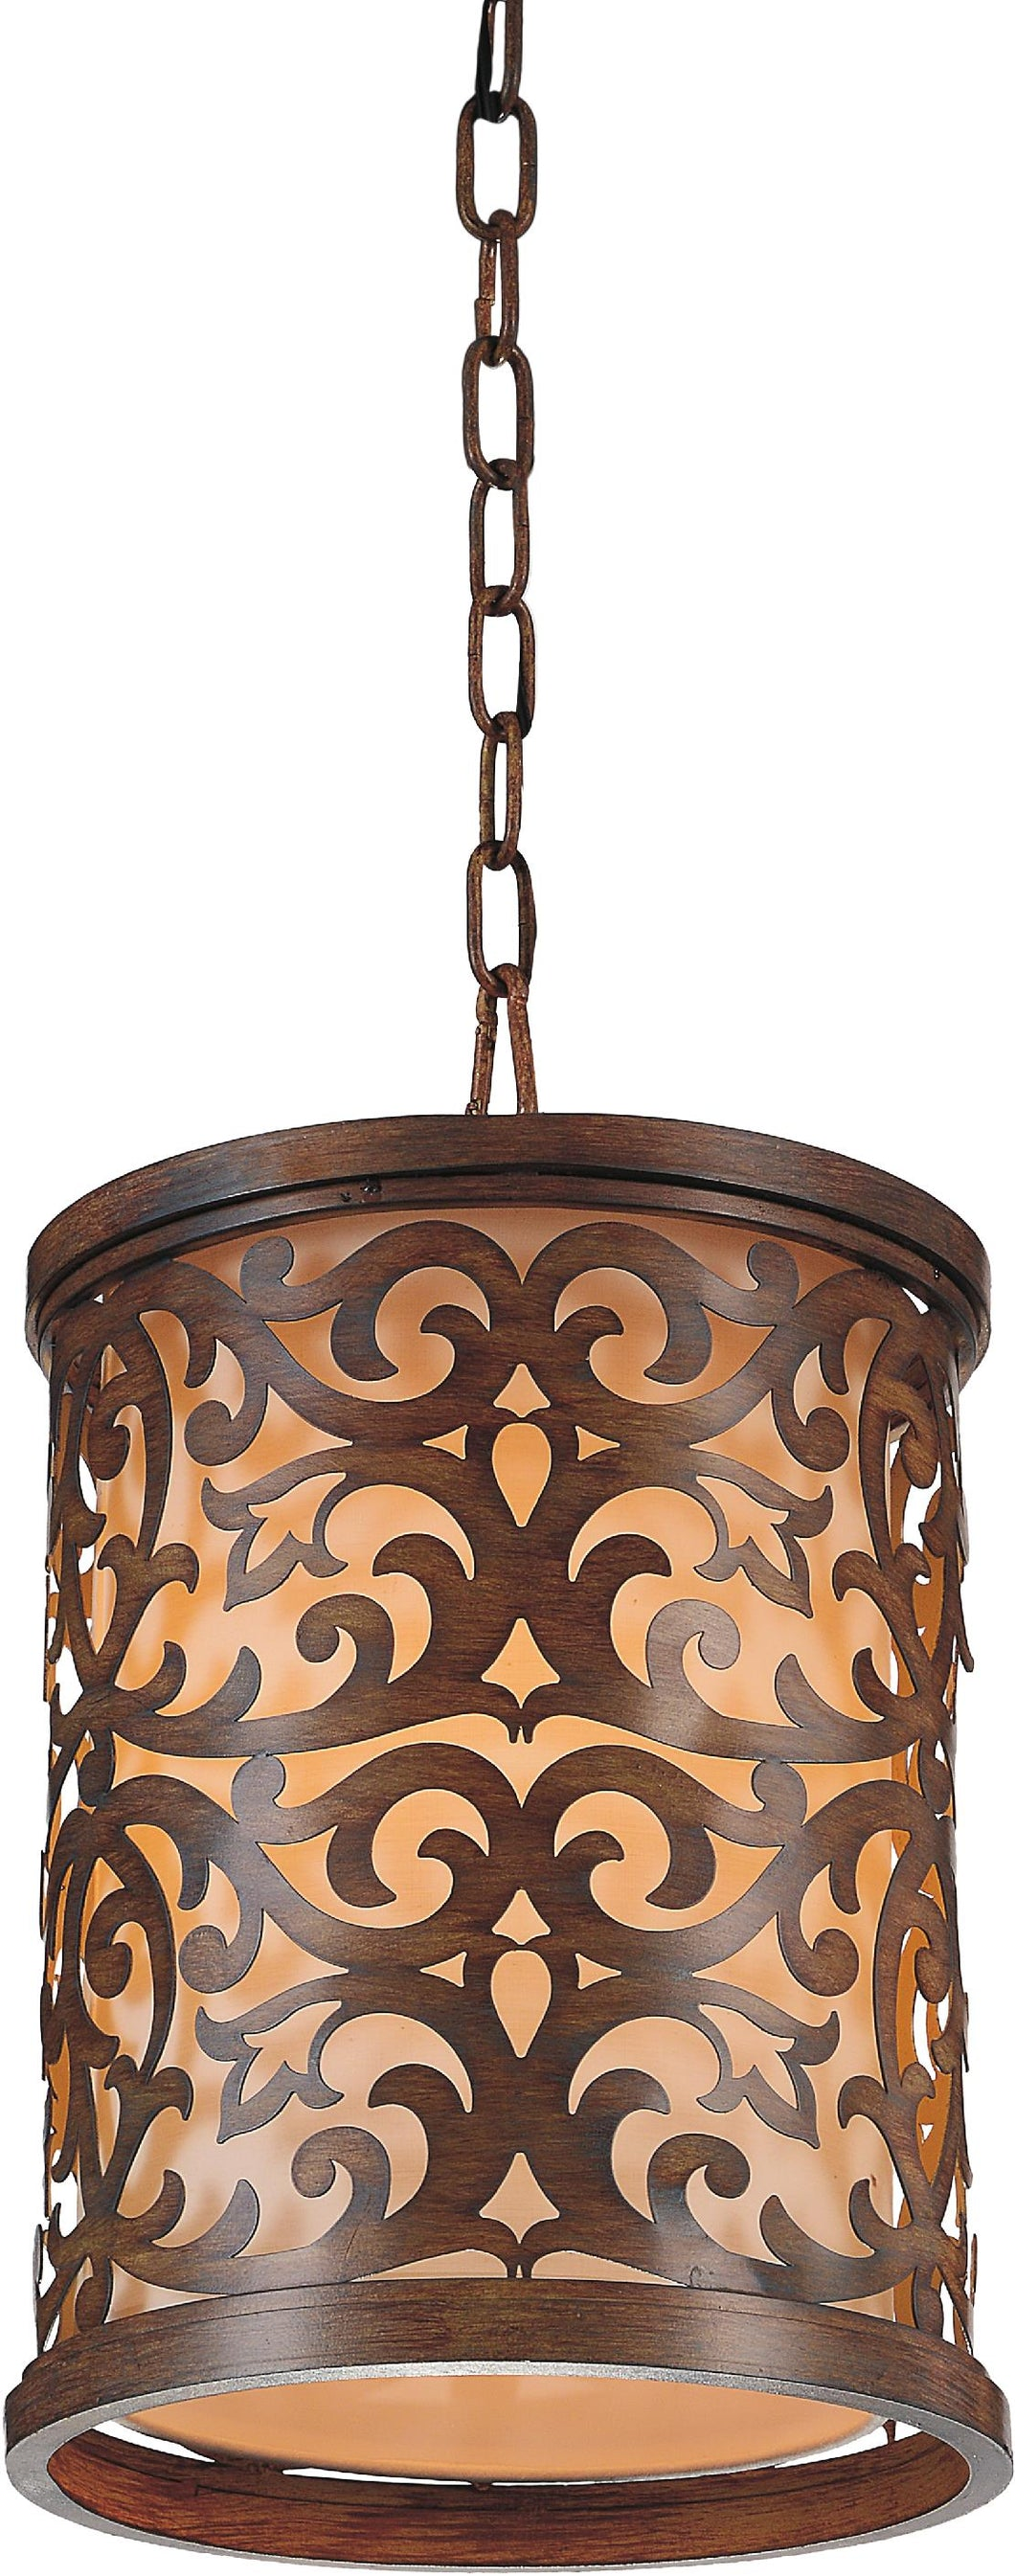 1 Light Drum Shade Mini Pendant with Brushed Chocolate finish